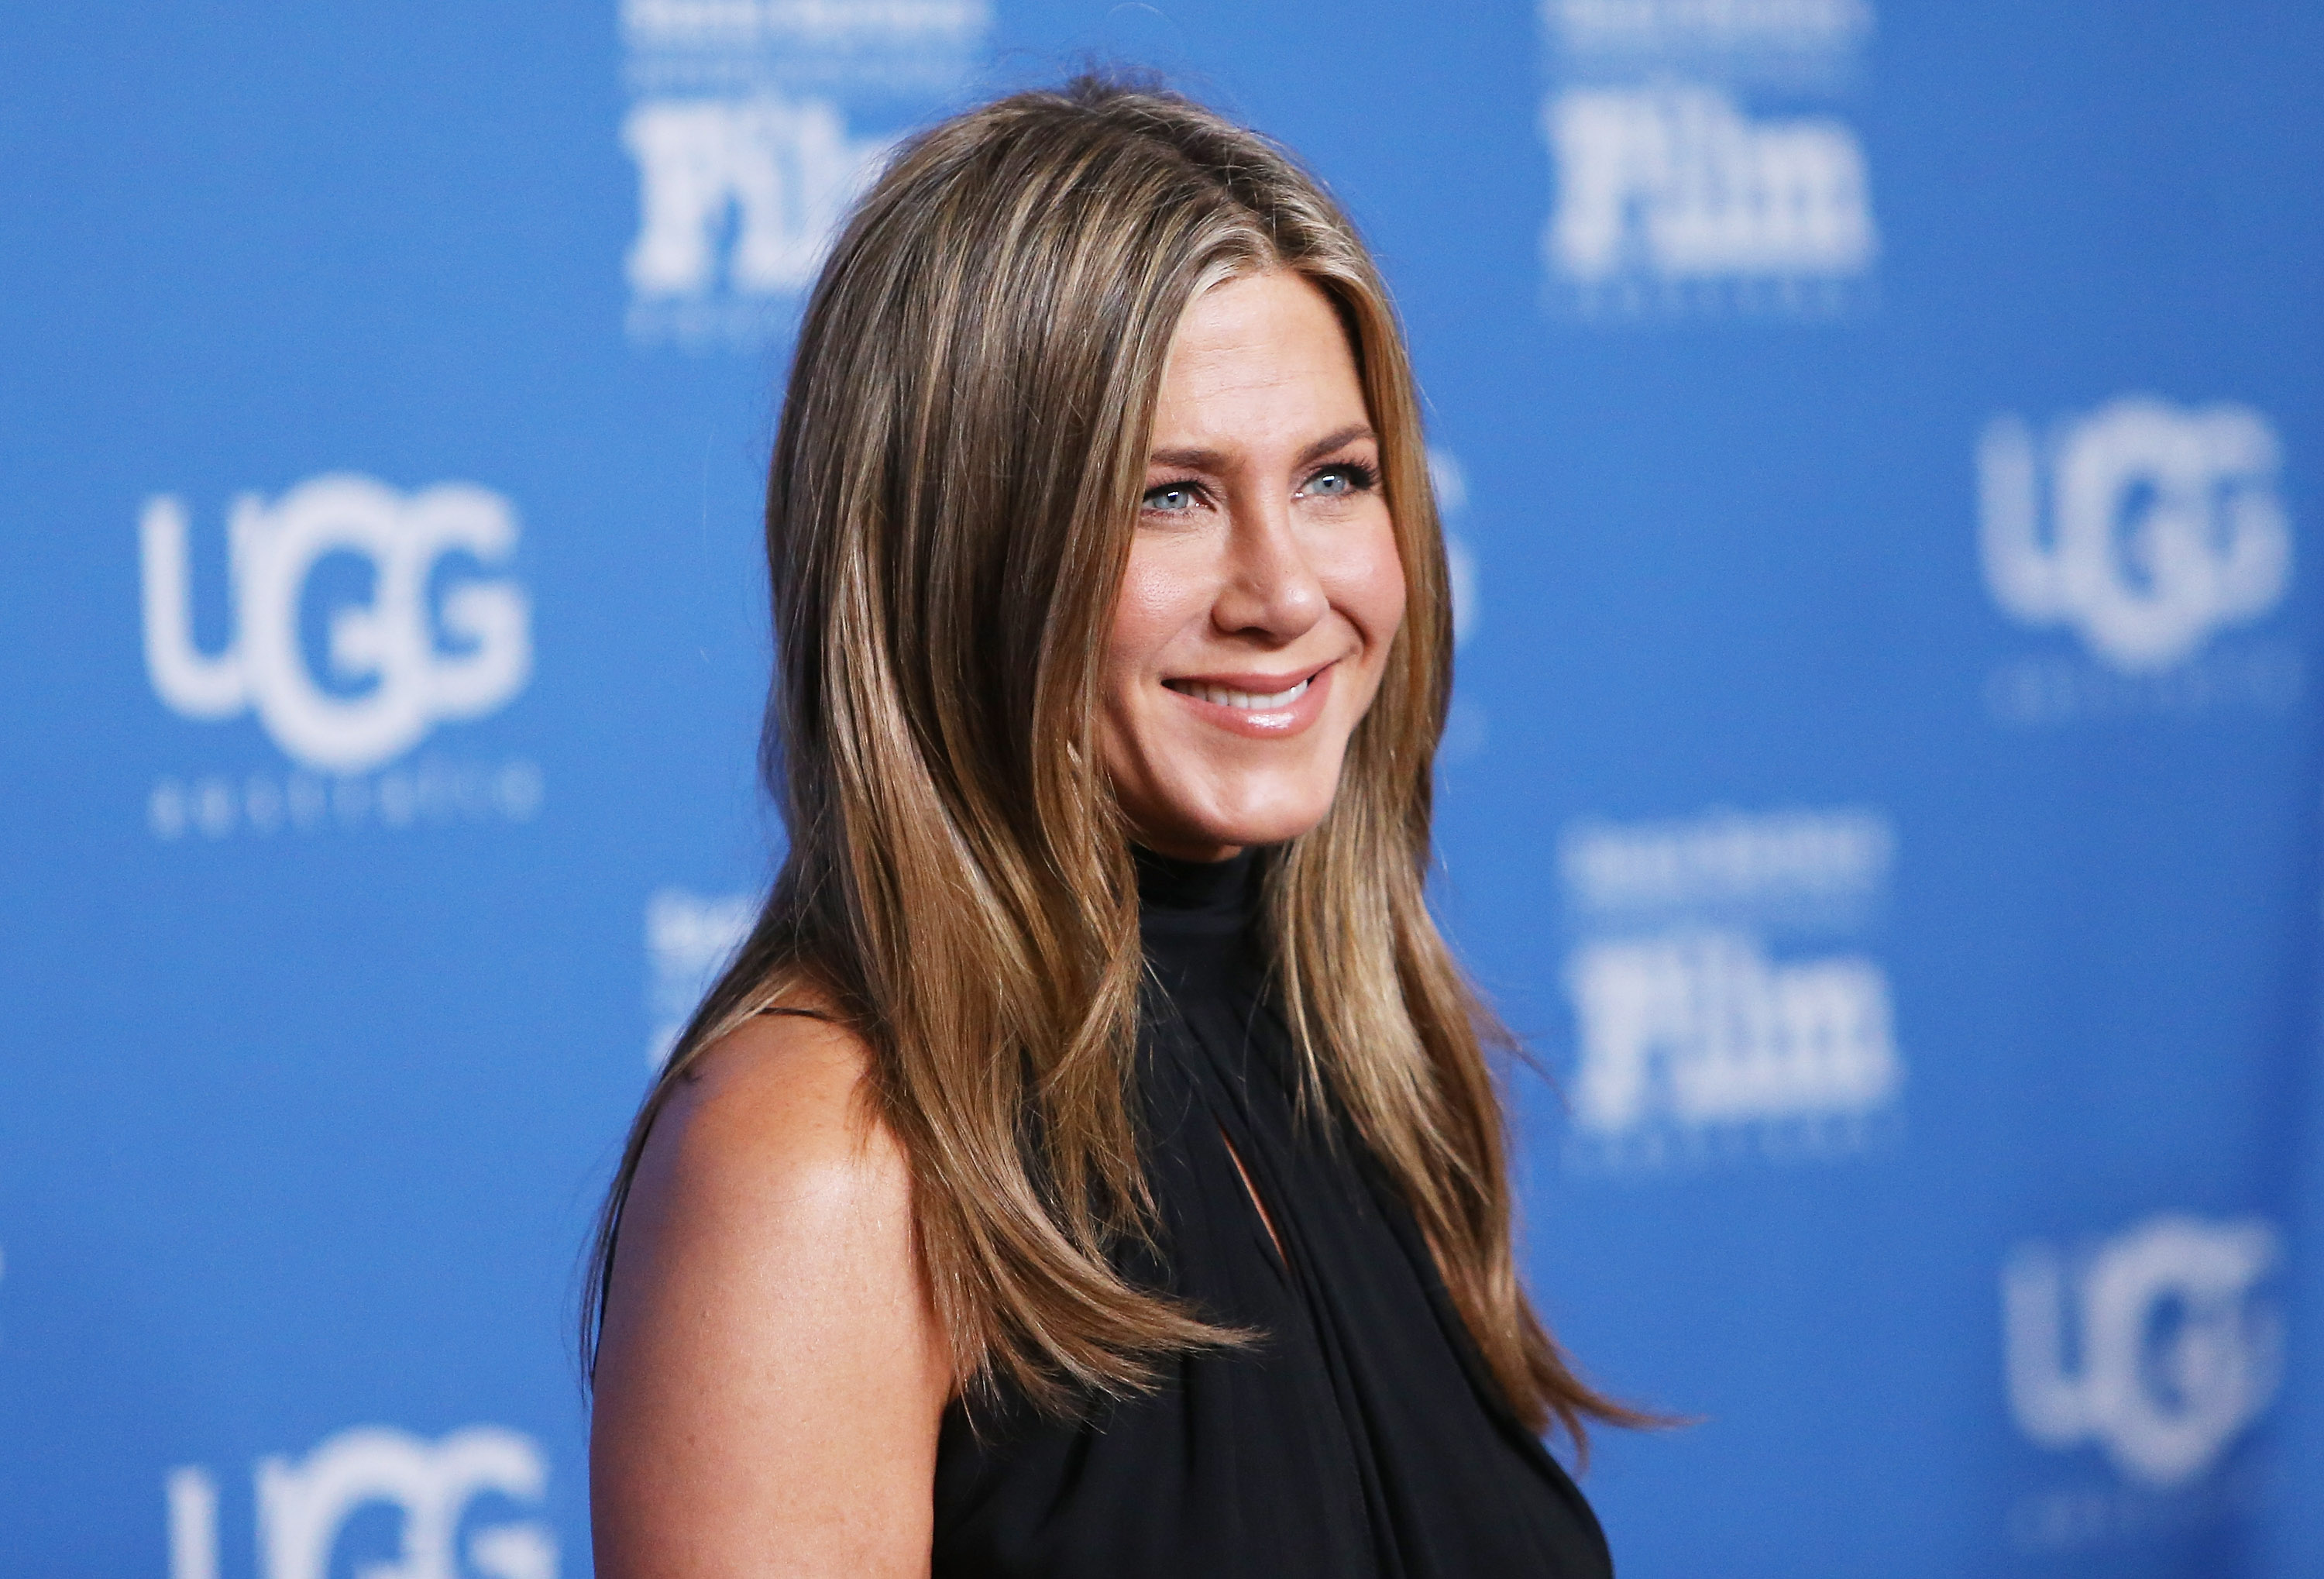 Jennifer Aniston arrives at the 30th Santa Barbara International Film Festival - Montecito Award held at Arlington Theatre on Jan. 30, 2015 in Santa Barbara, Calif.